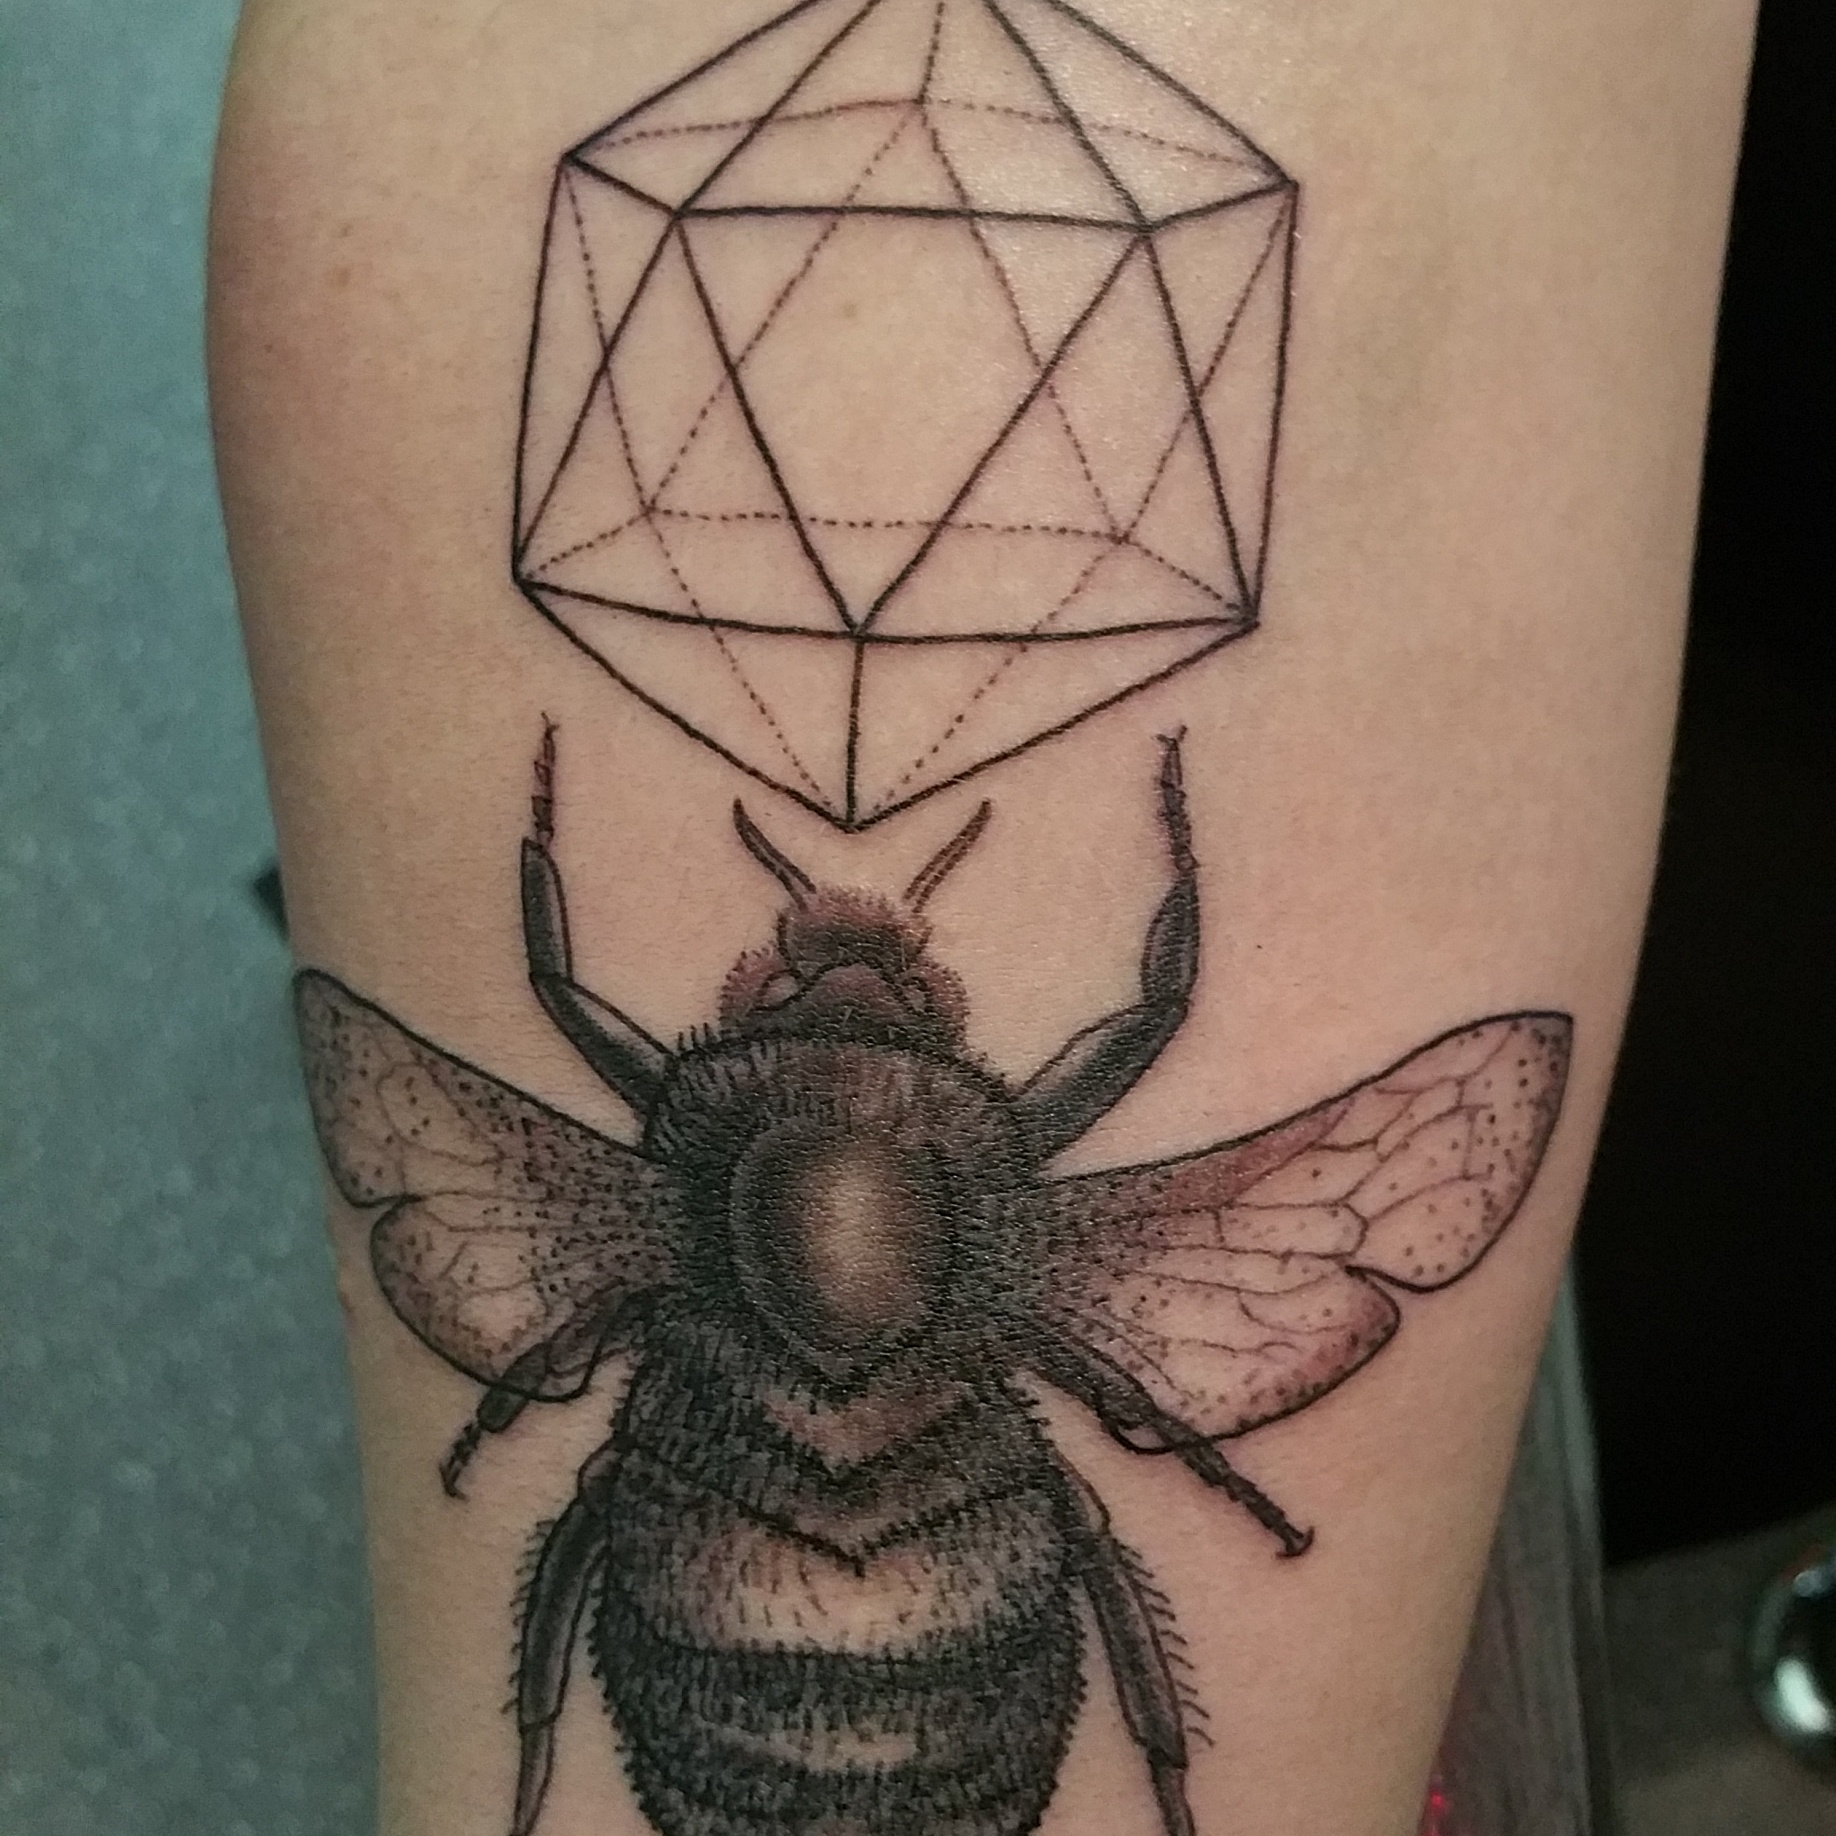 a742d8b97 Grey Ink Bee With Prism Tattoo Design For Forearm